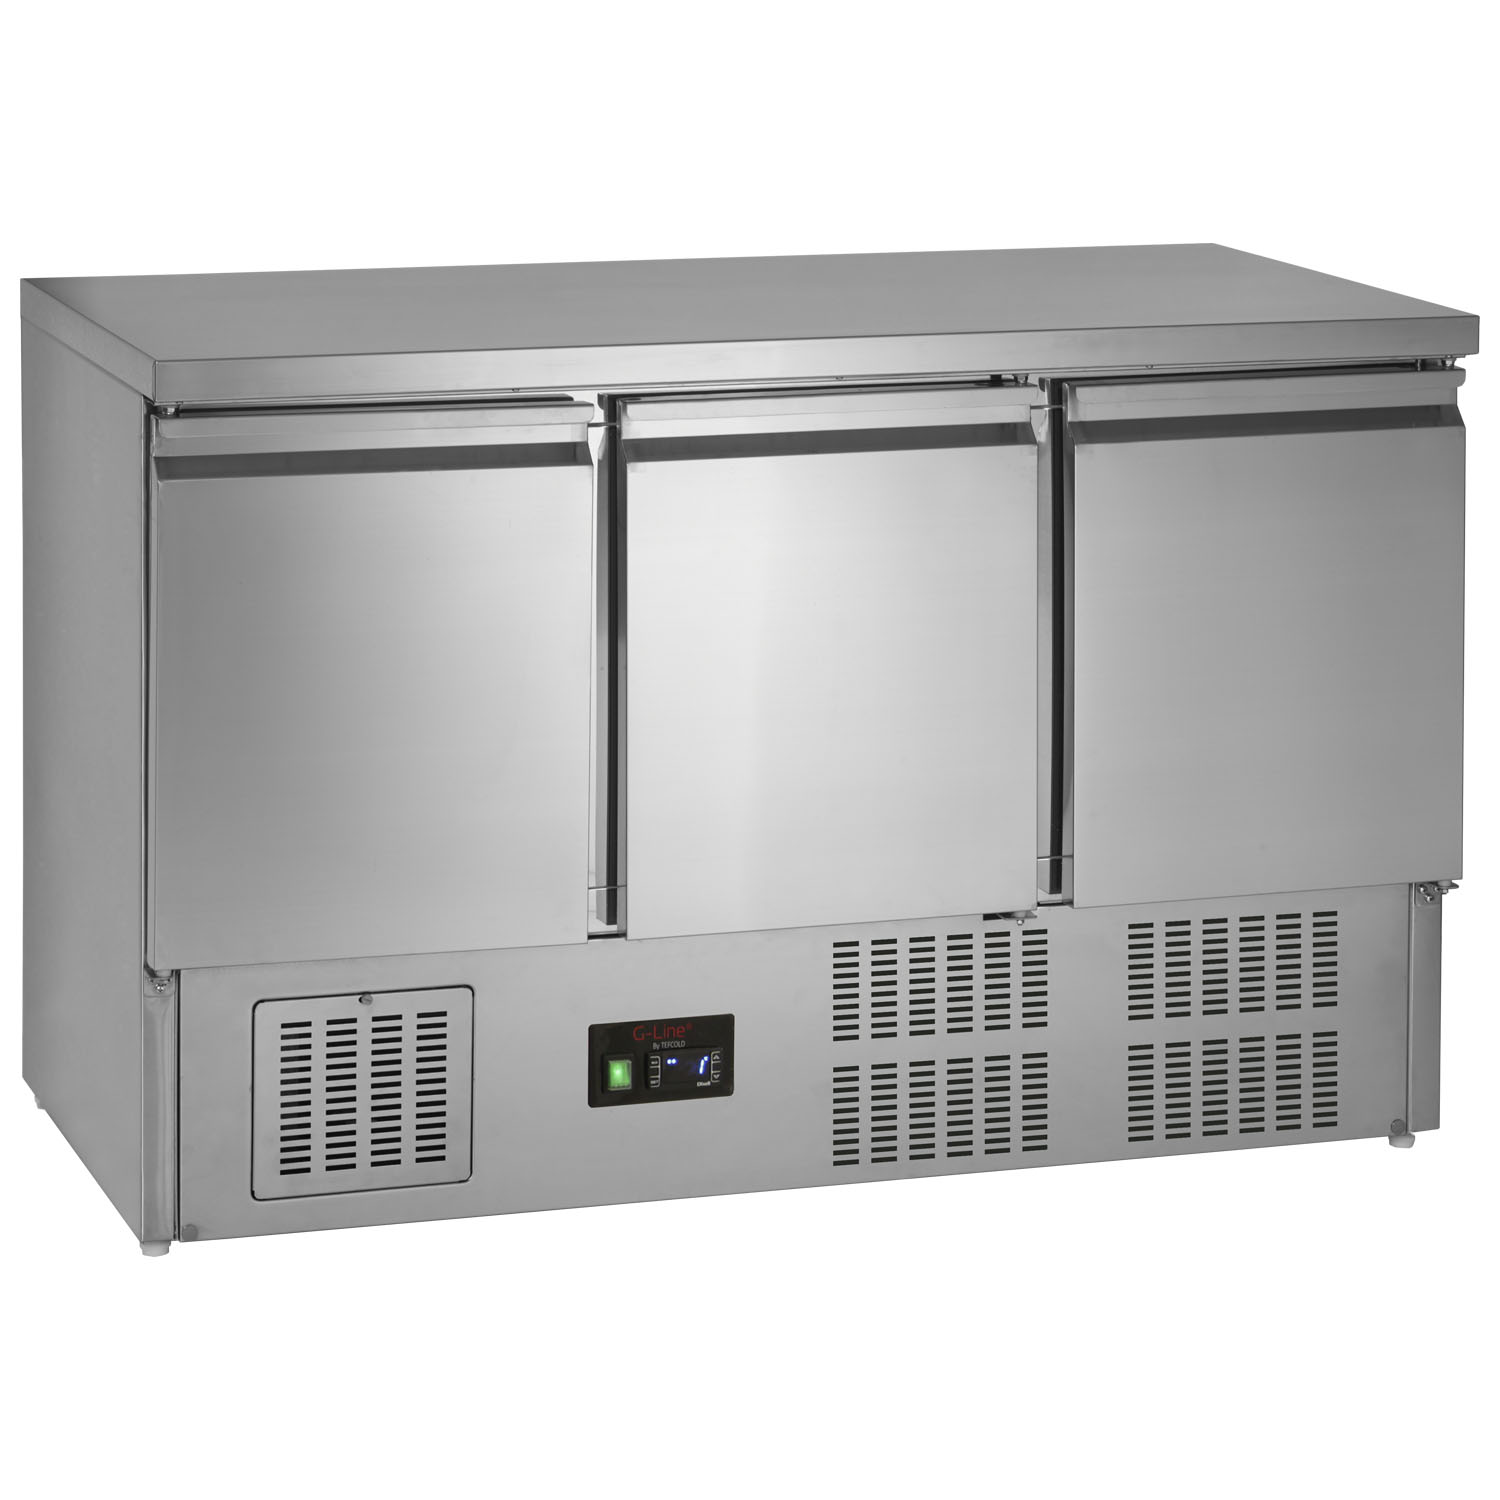 Tefcold G-Line GS365ST Gastronorm 3-Door Counter Chiller